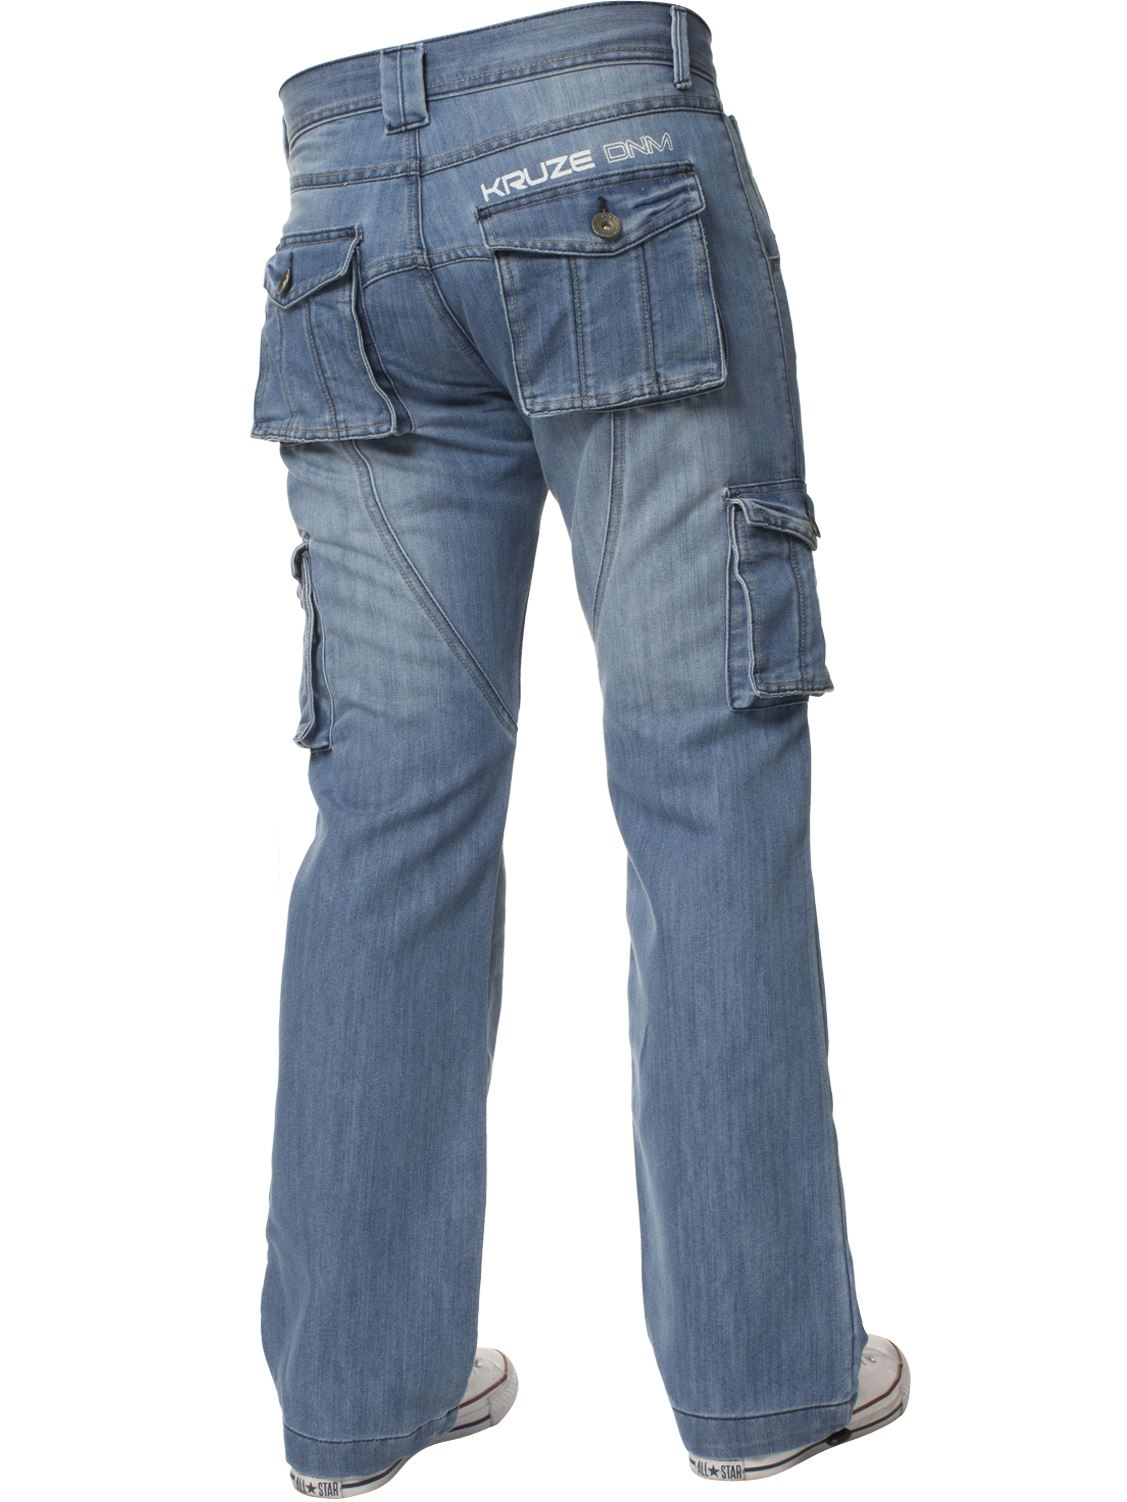 Mens-Cargo-Jeans-Combat-Trousers-Heavy-Duty-Work-Casual-Big-Tall-Denim-Pants thumbnail 77